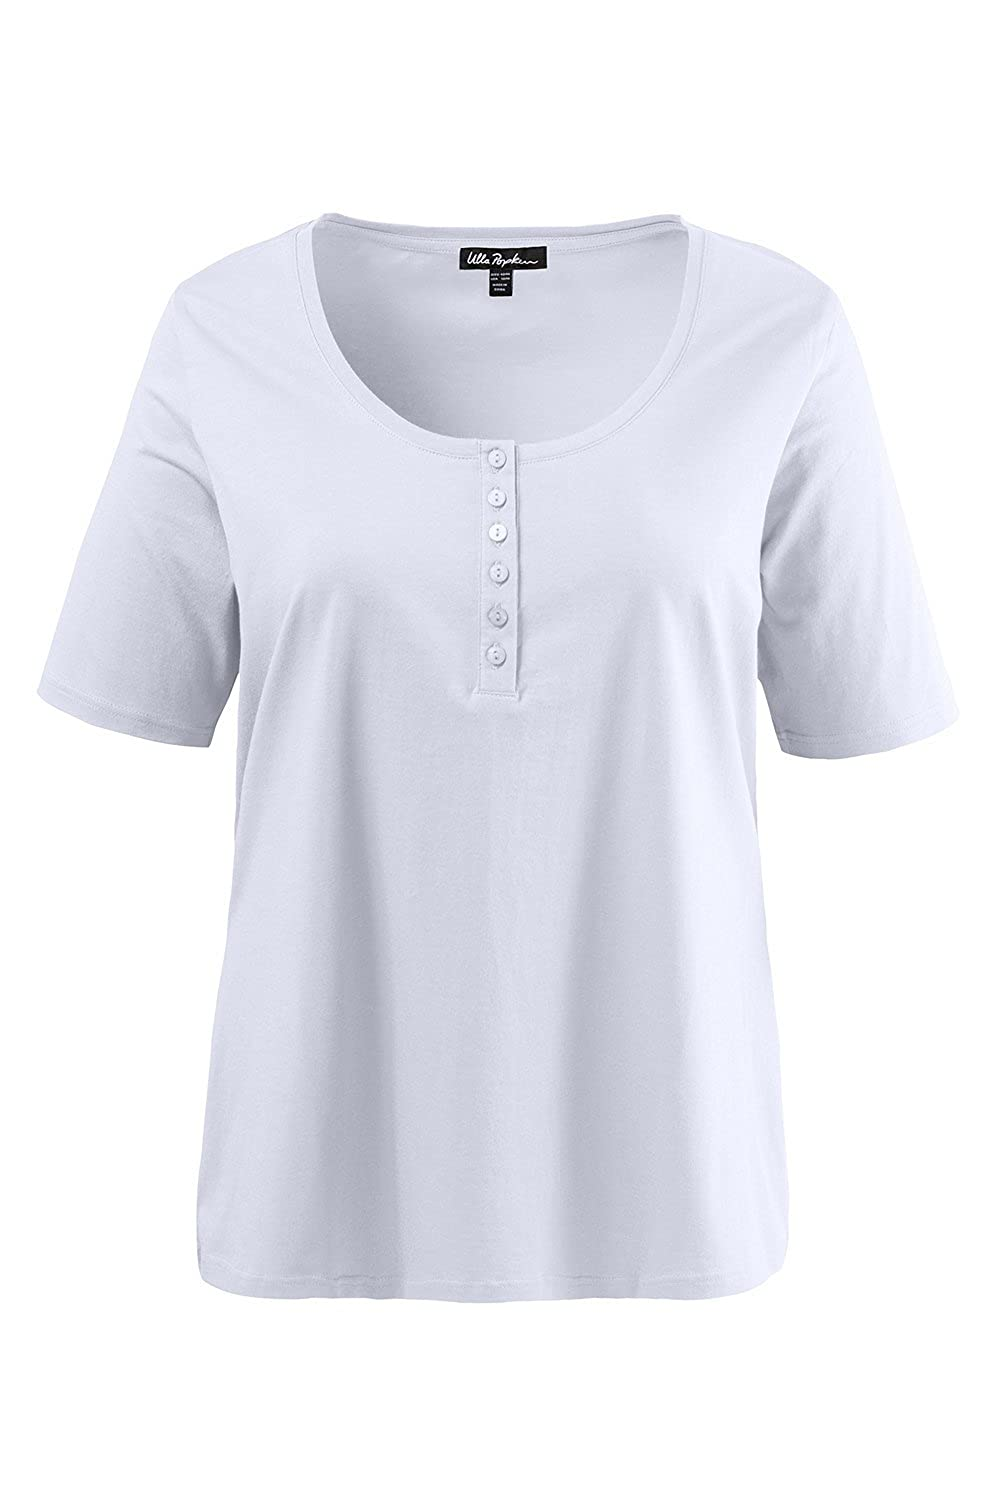 be0df54f496 A wardrobe essential  the classic design henley tee. Relaxed fit to flatter  your figure